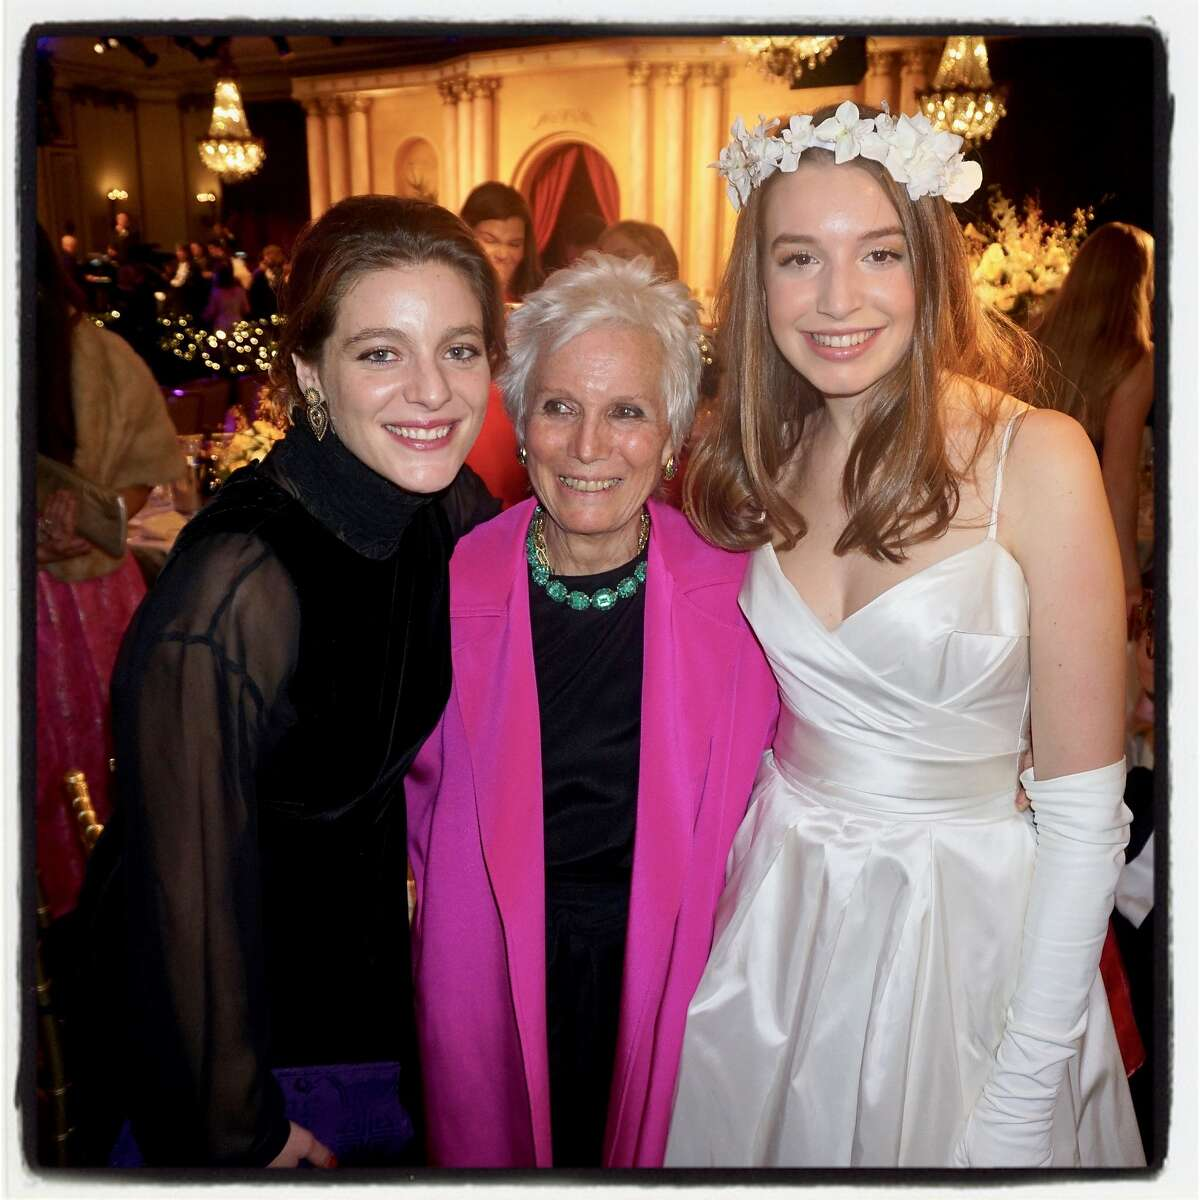 Former Cotillion debutantes Justine Thieriot (left) and her mom, Angie Thieriot, with debutante India Thieriot at the 76th Cotillion. Dec. 22, 2013.